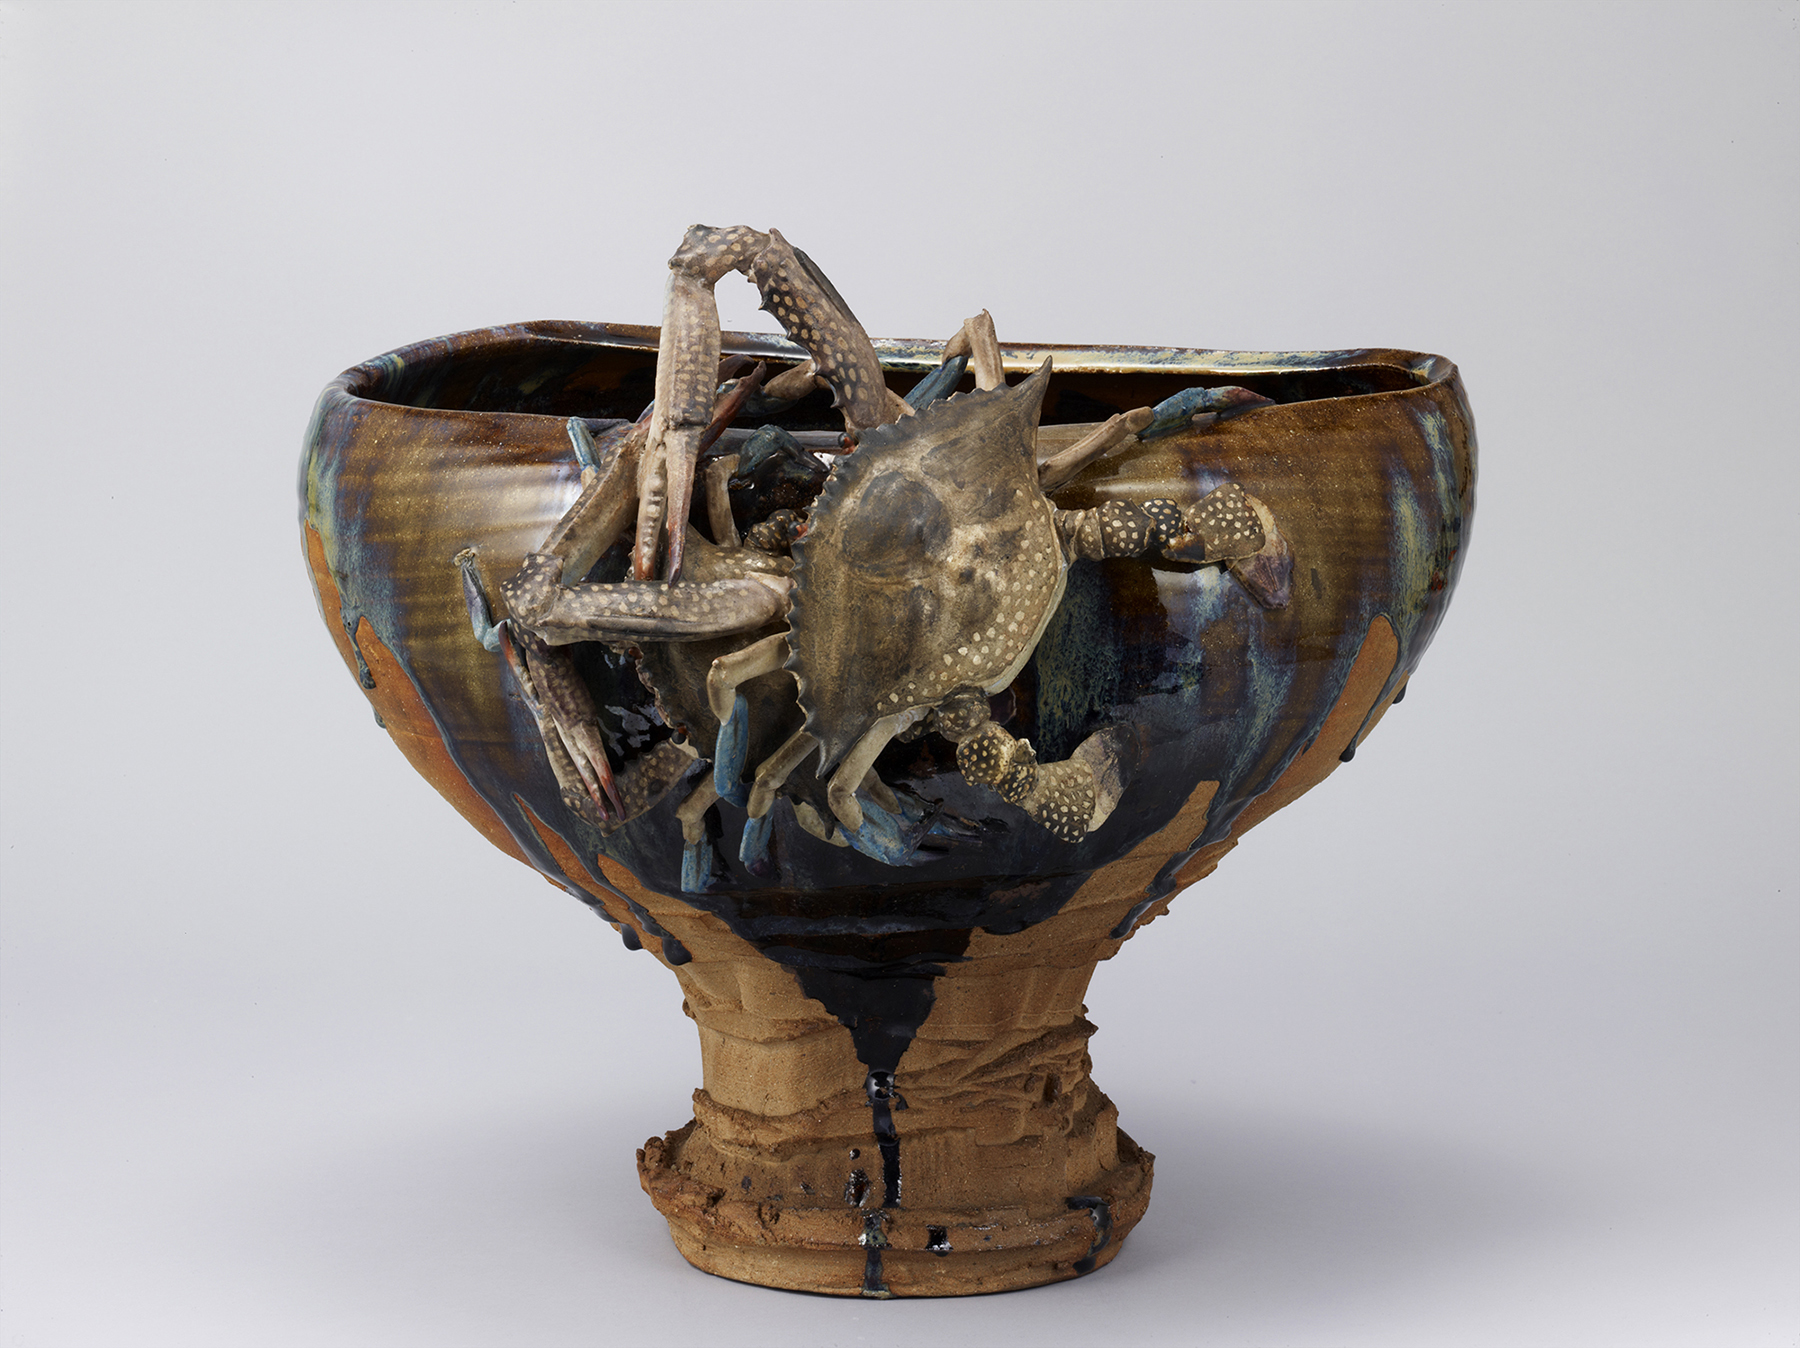 'Flower Vase, Pottery with Brown Glaze and Crabs' (1881), an Important Cultural Property | TOKYO NATIONAL MUSEUM, TNM IMAGE ARCHIVES